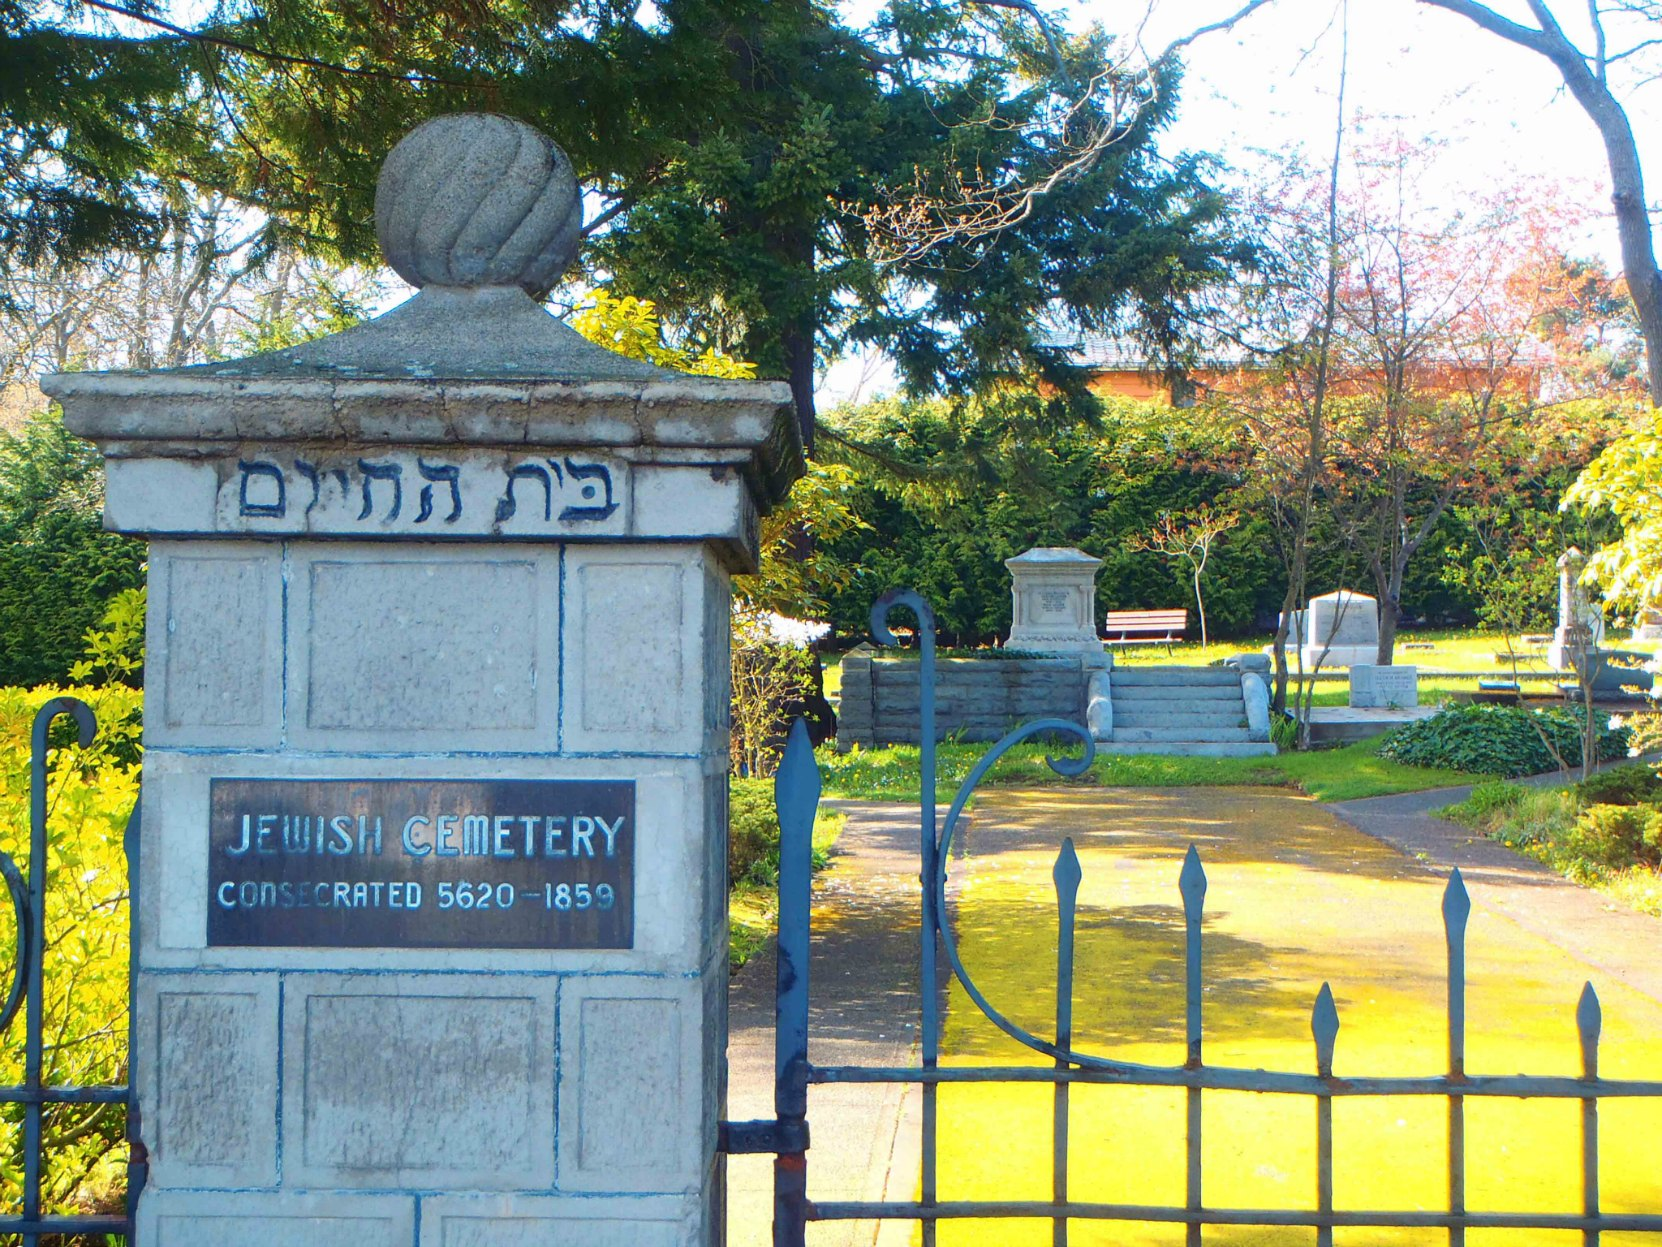 The entrance gate of Victoria Jewish cemetery, Victoria, B.C.